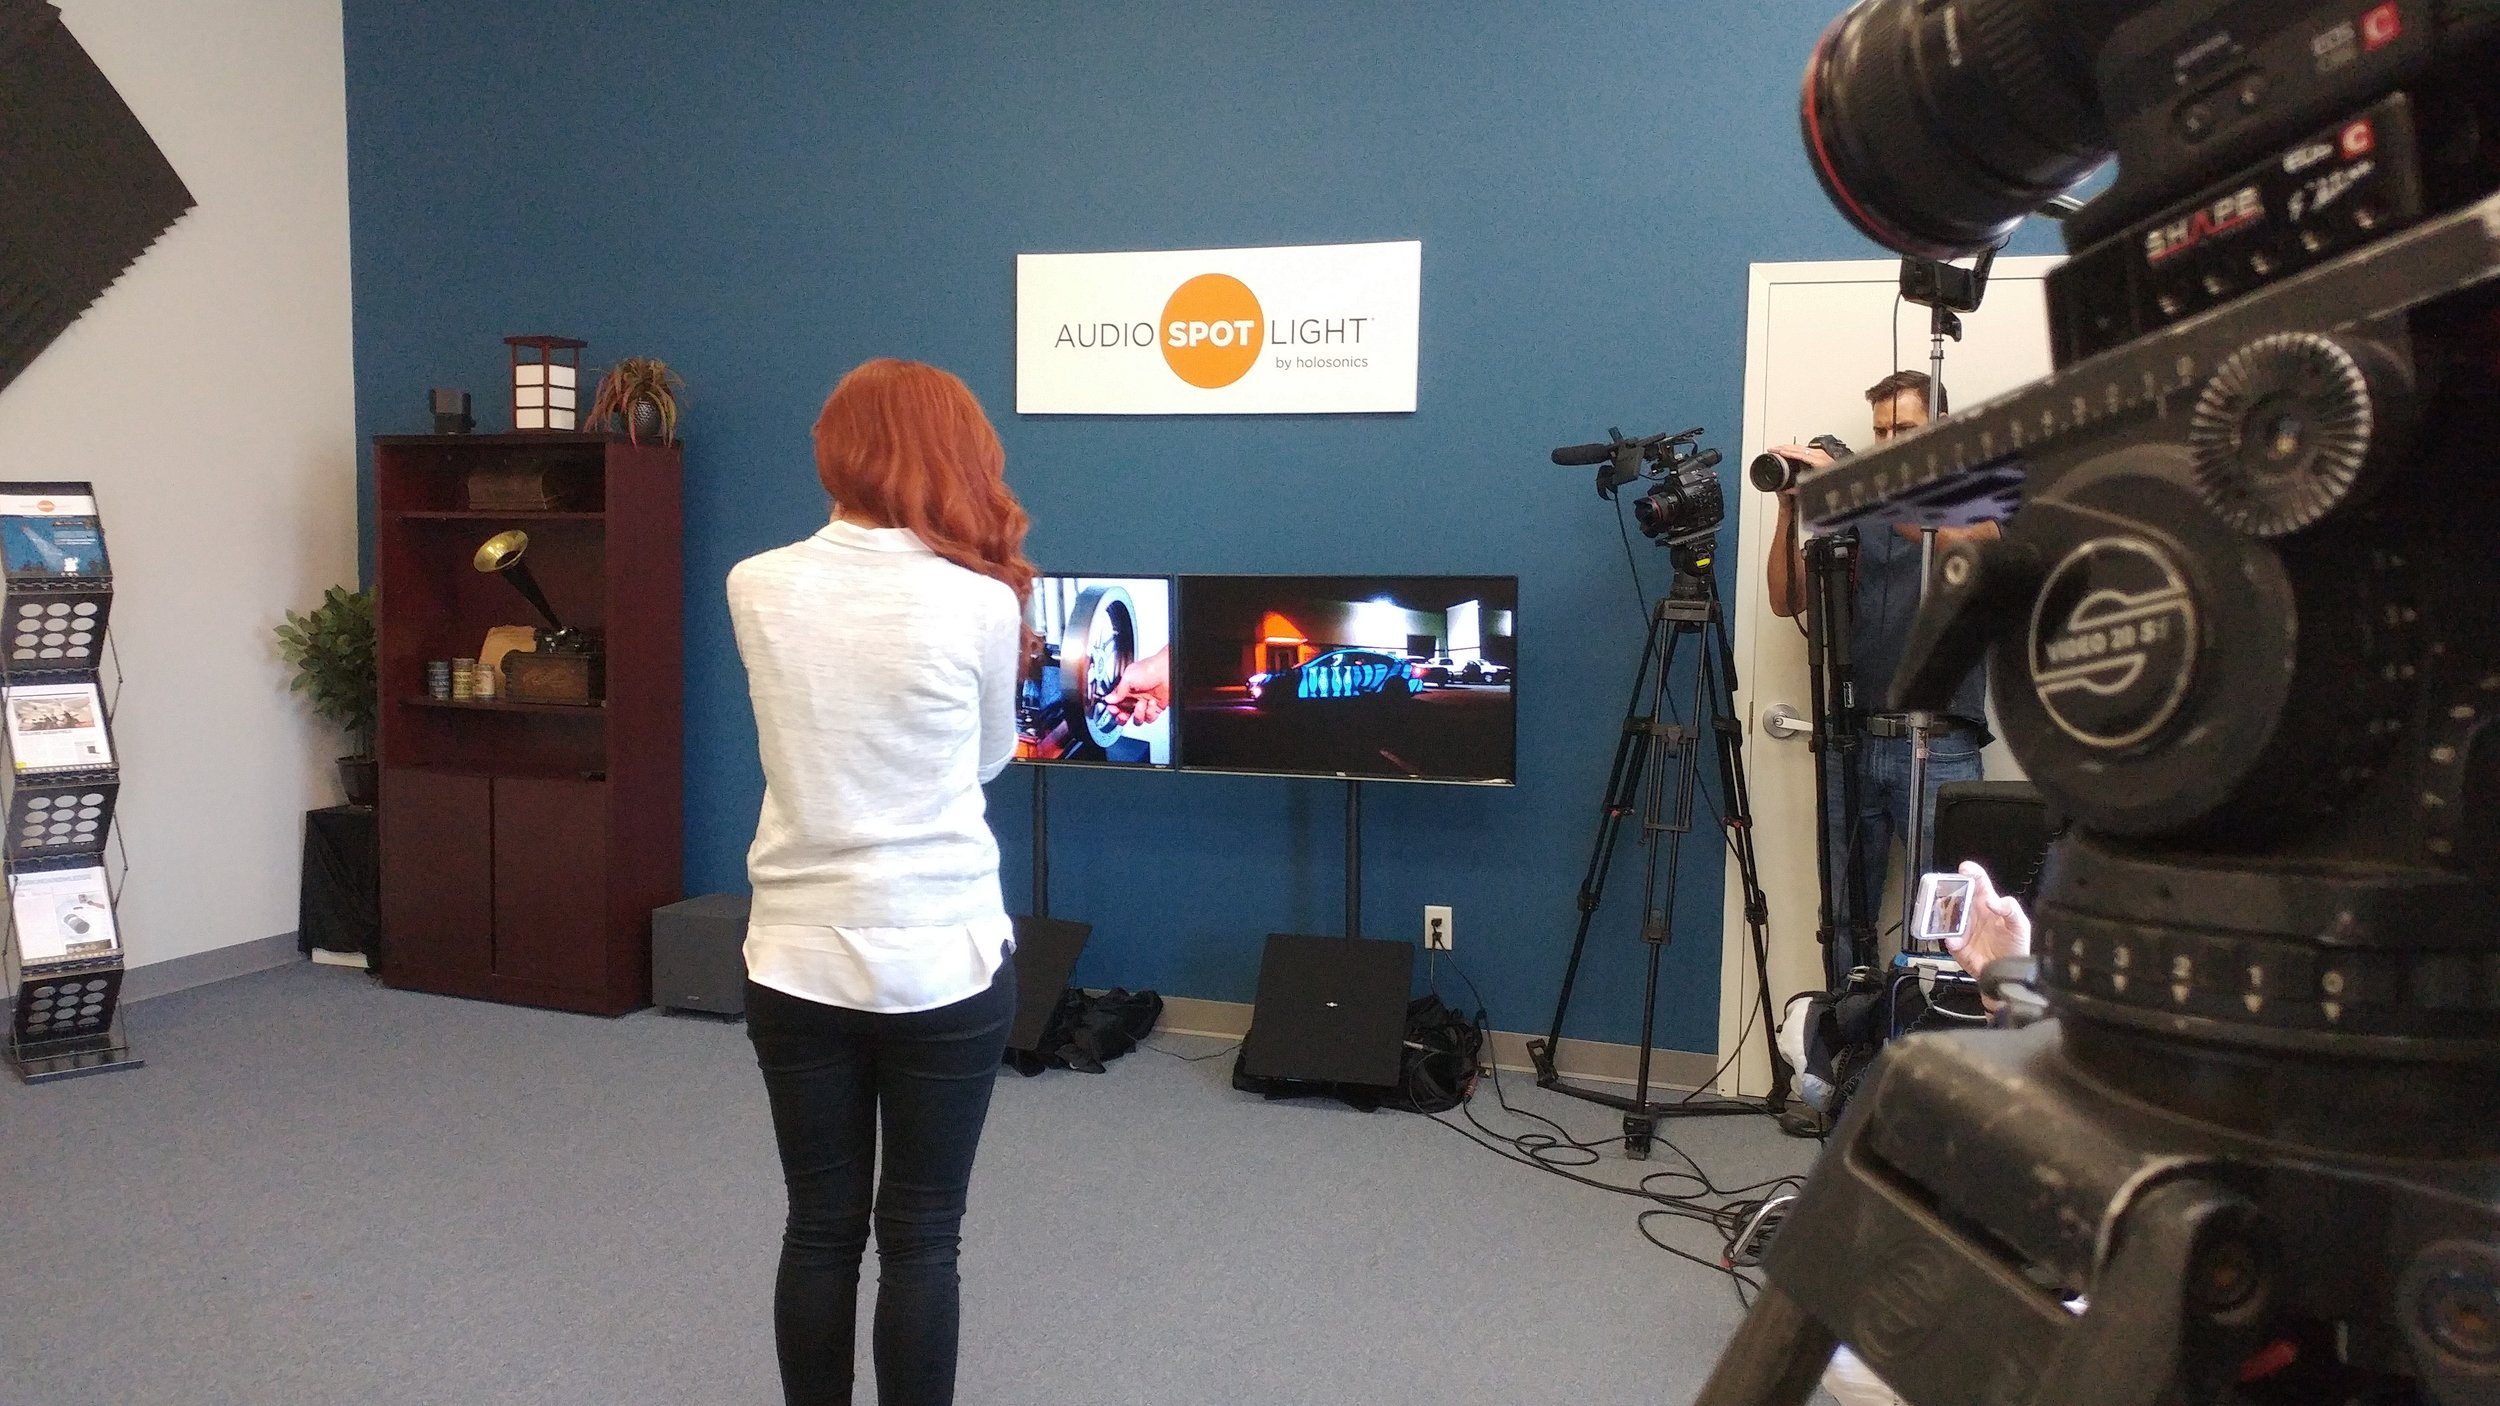 CBS correspondent Alie Ward gets a firsthand demonstration of Audio Spotlight technology